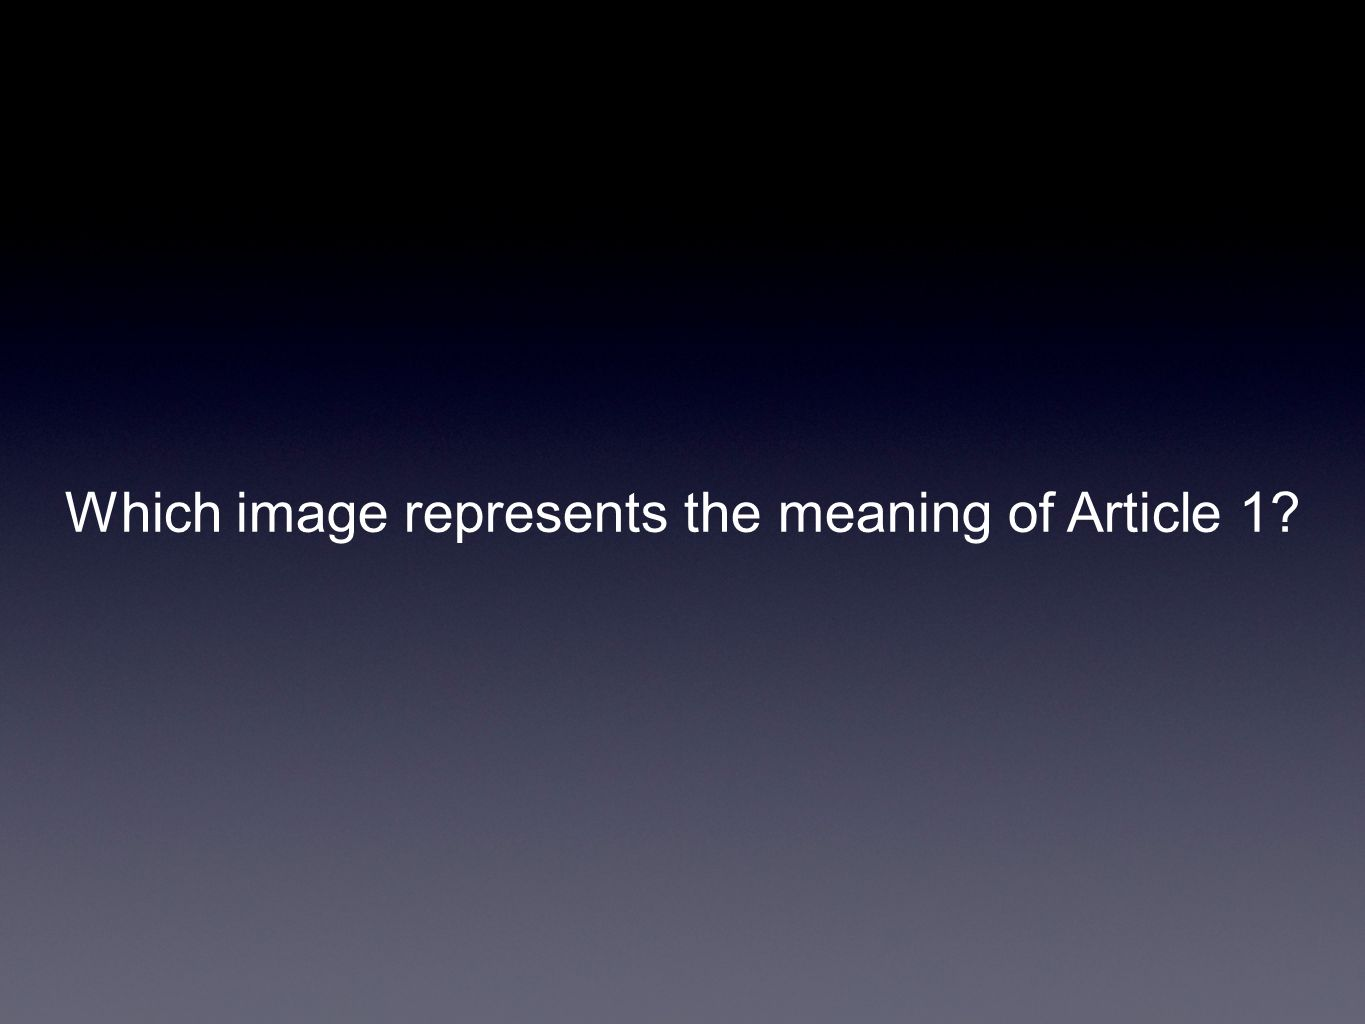 Which image represents the meaning of Article 1